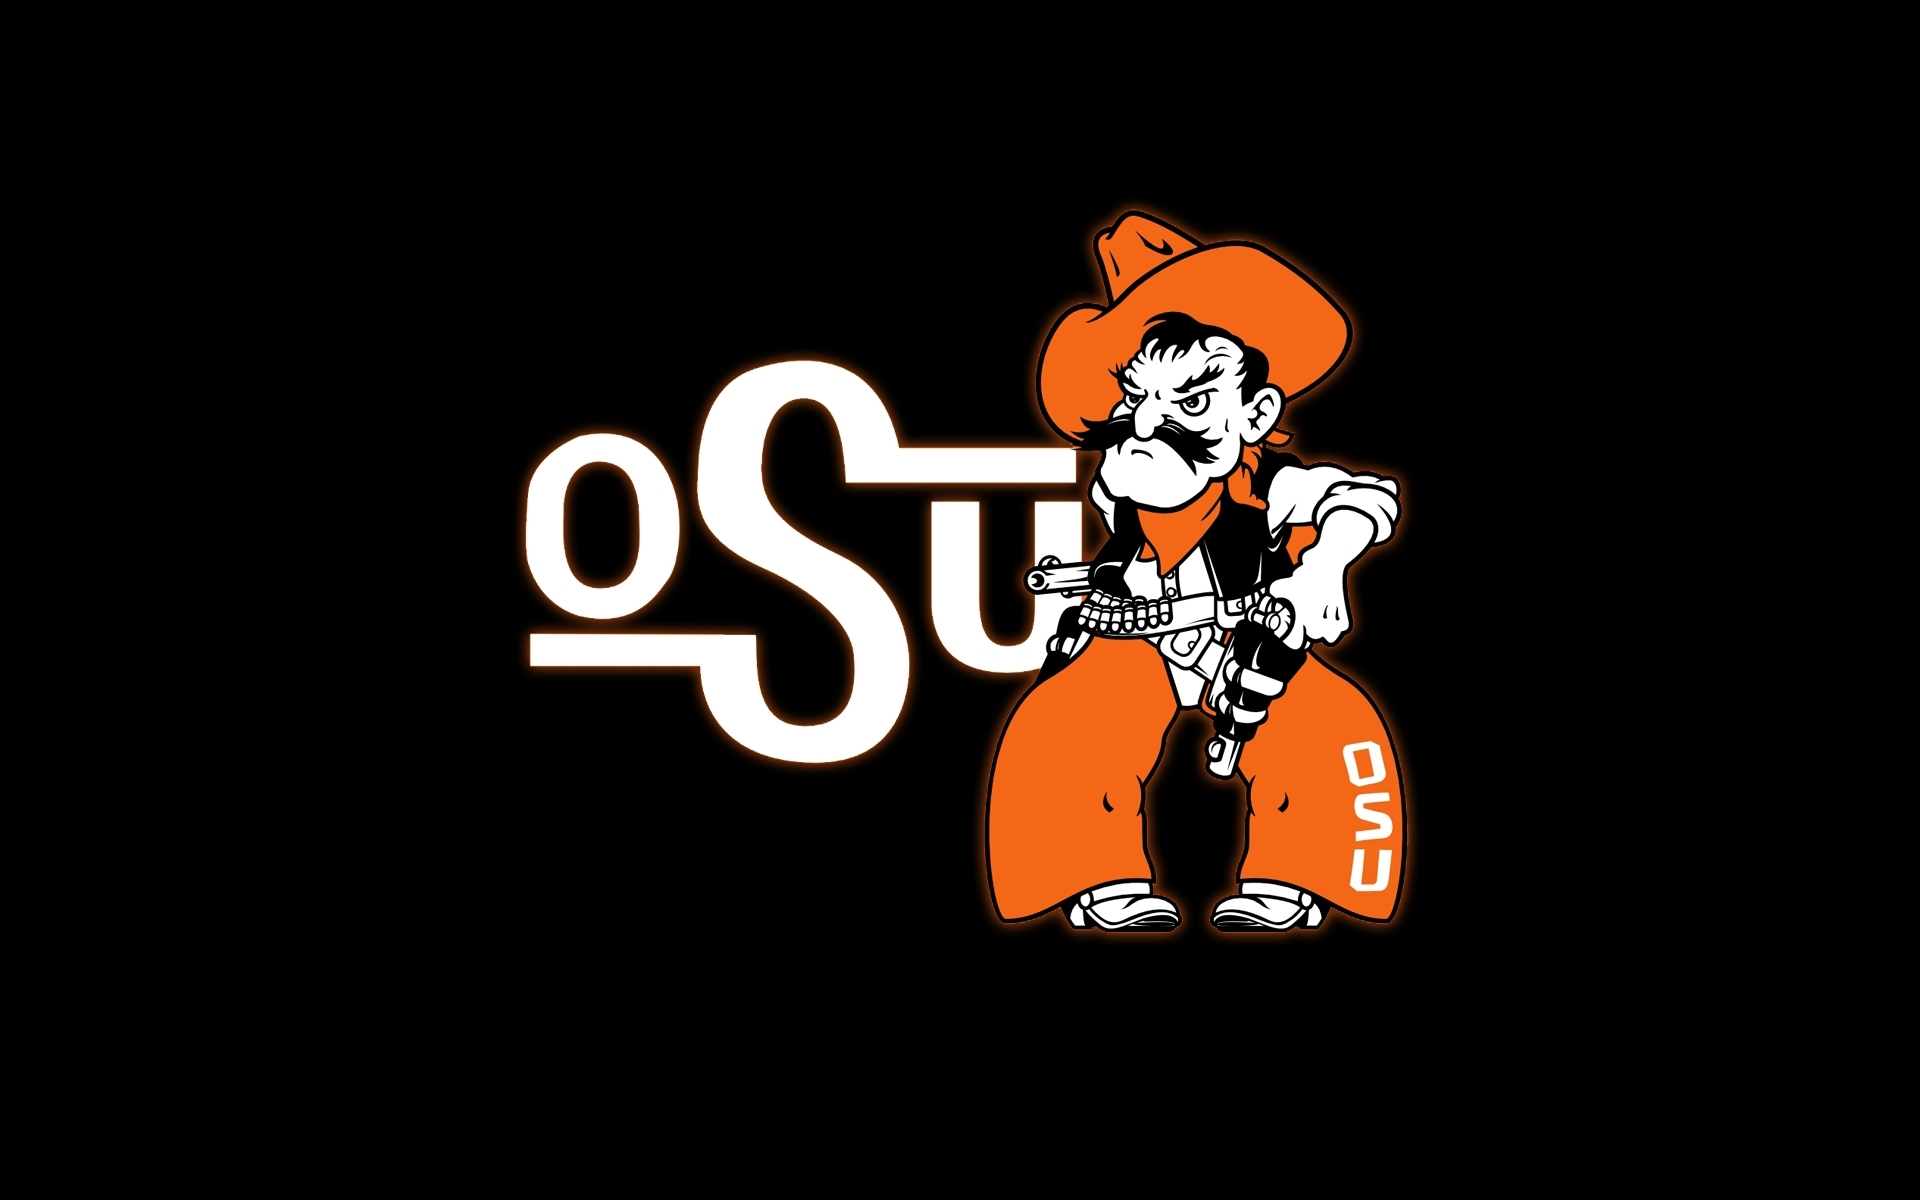 oklahoma state wallpapers group (53+)